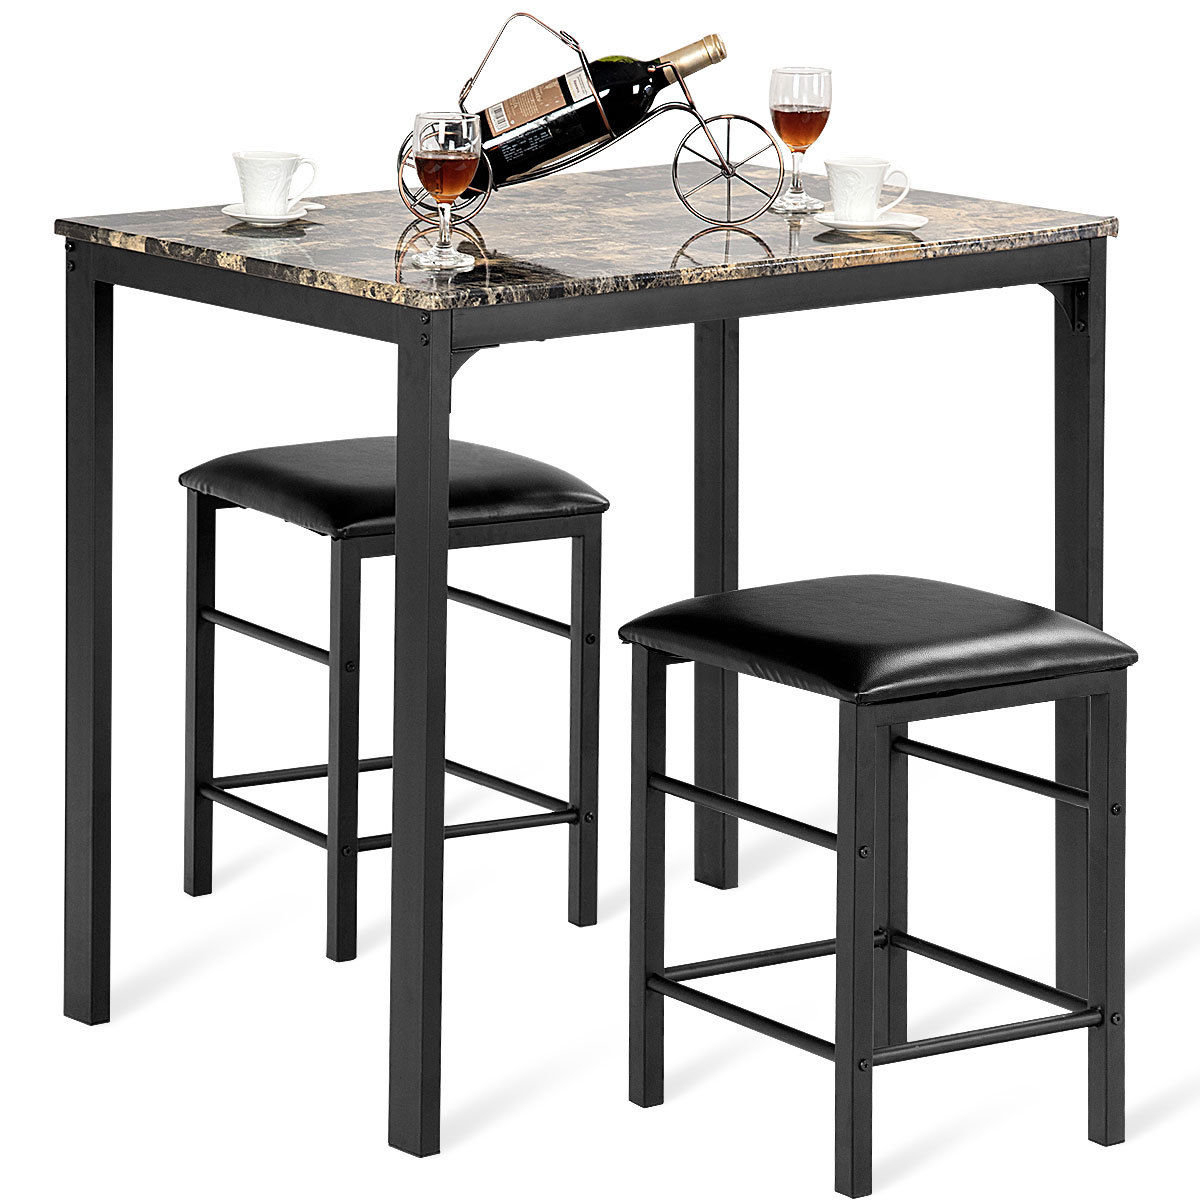 Mitzel 3 Piece Dining Set For 2017 Penelope 3 Piece Counter Height Wood Dining Sets (View 7 of 20)